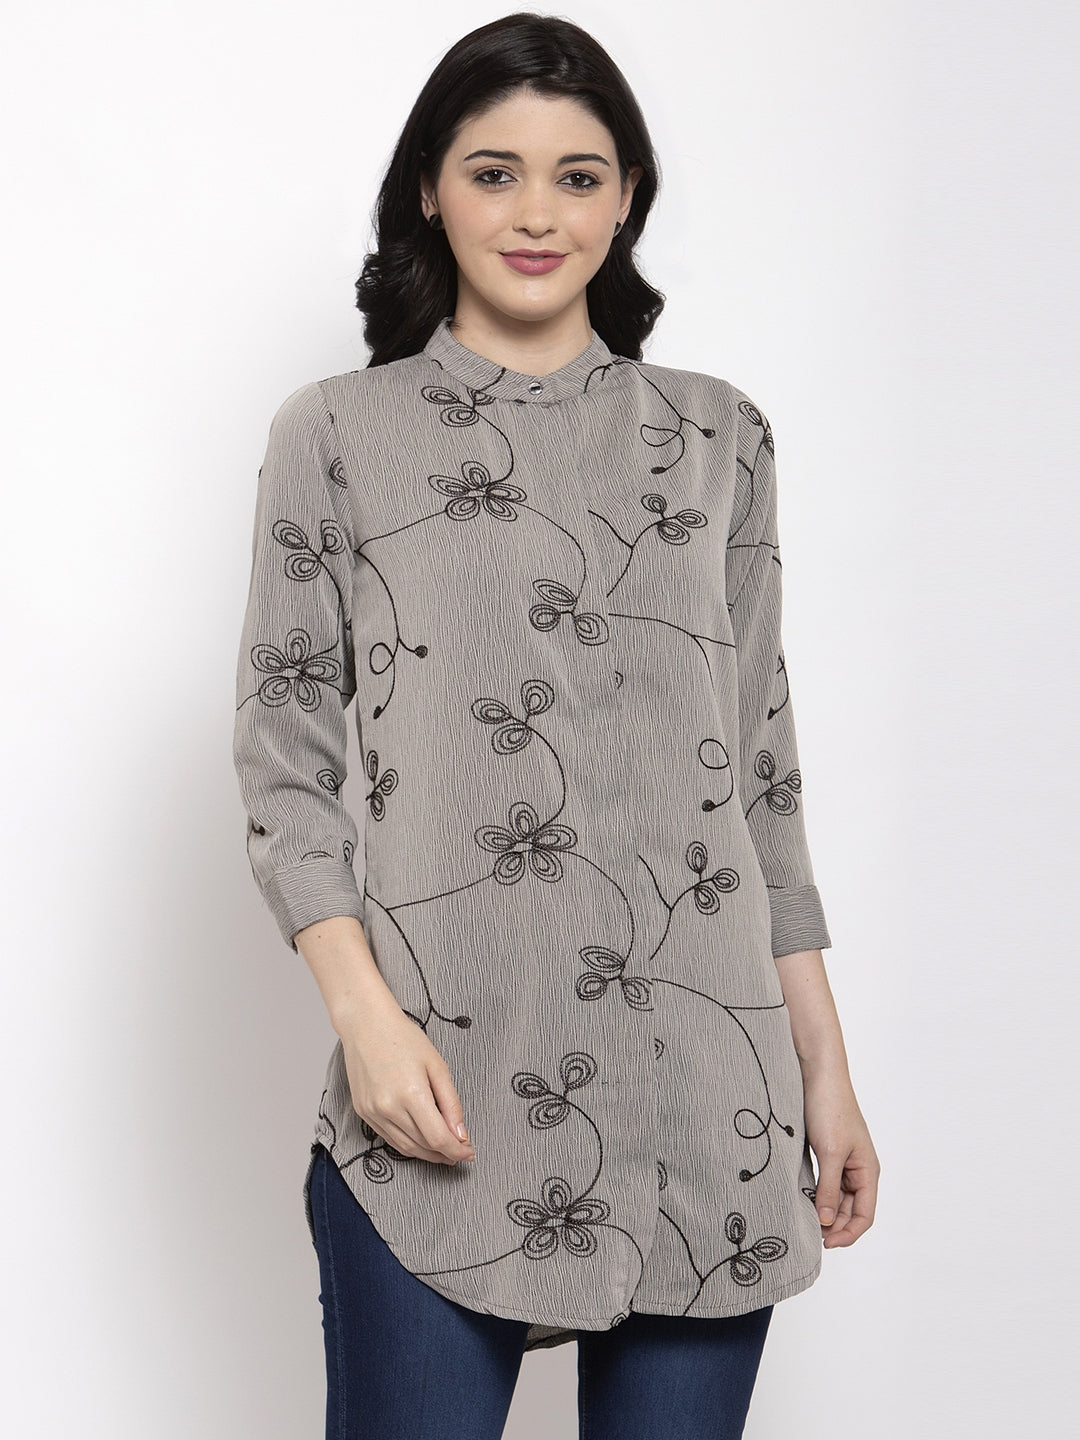 Aujjessa Milange Embroidered Top